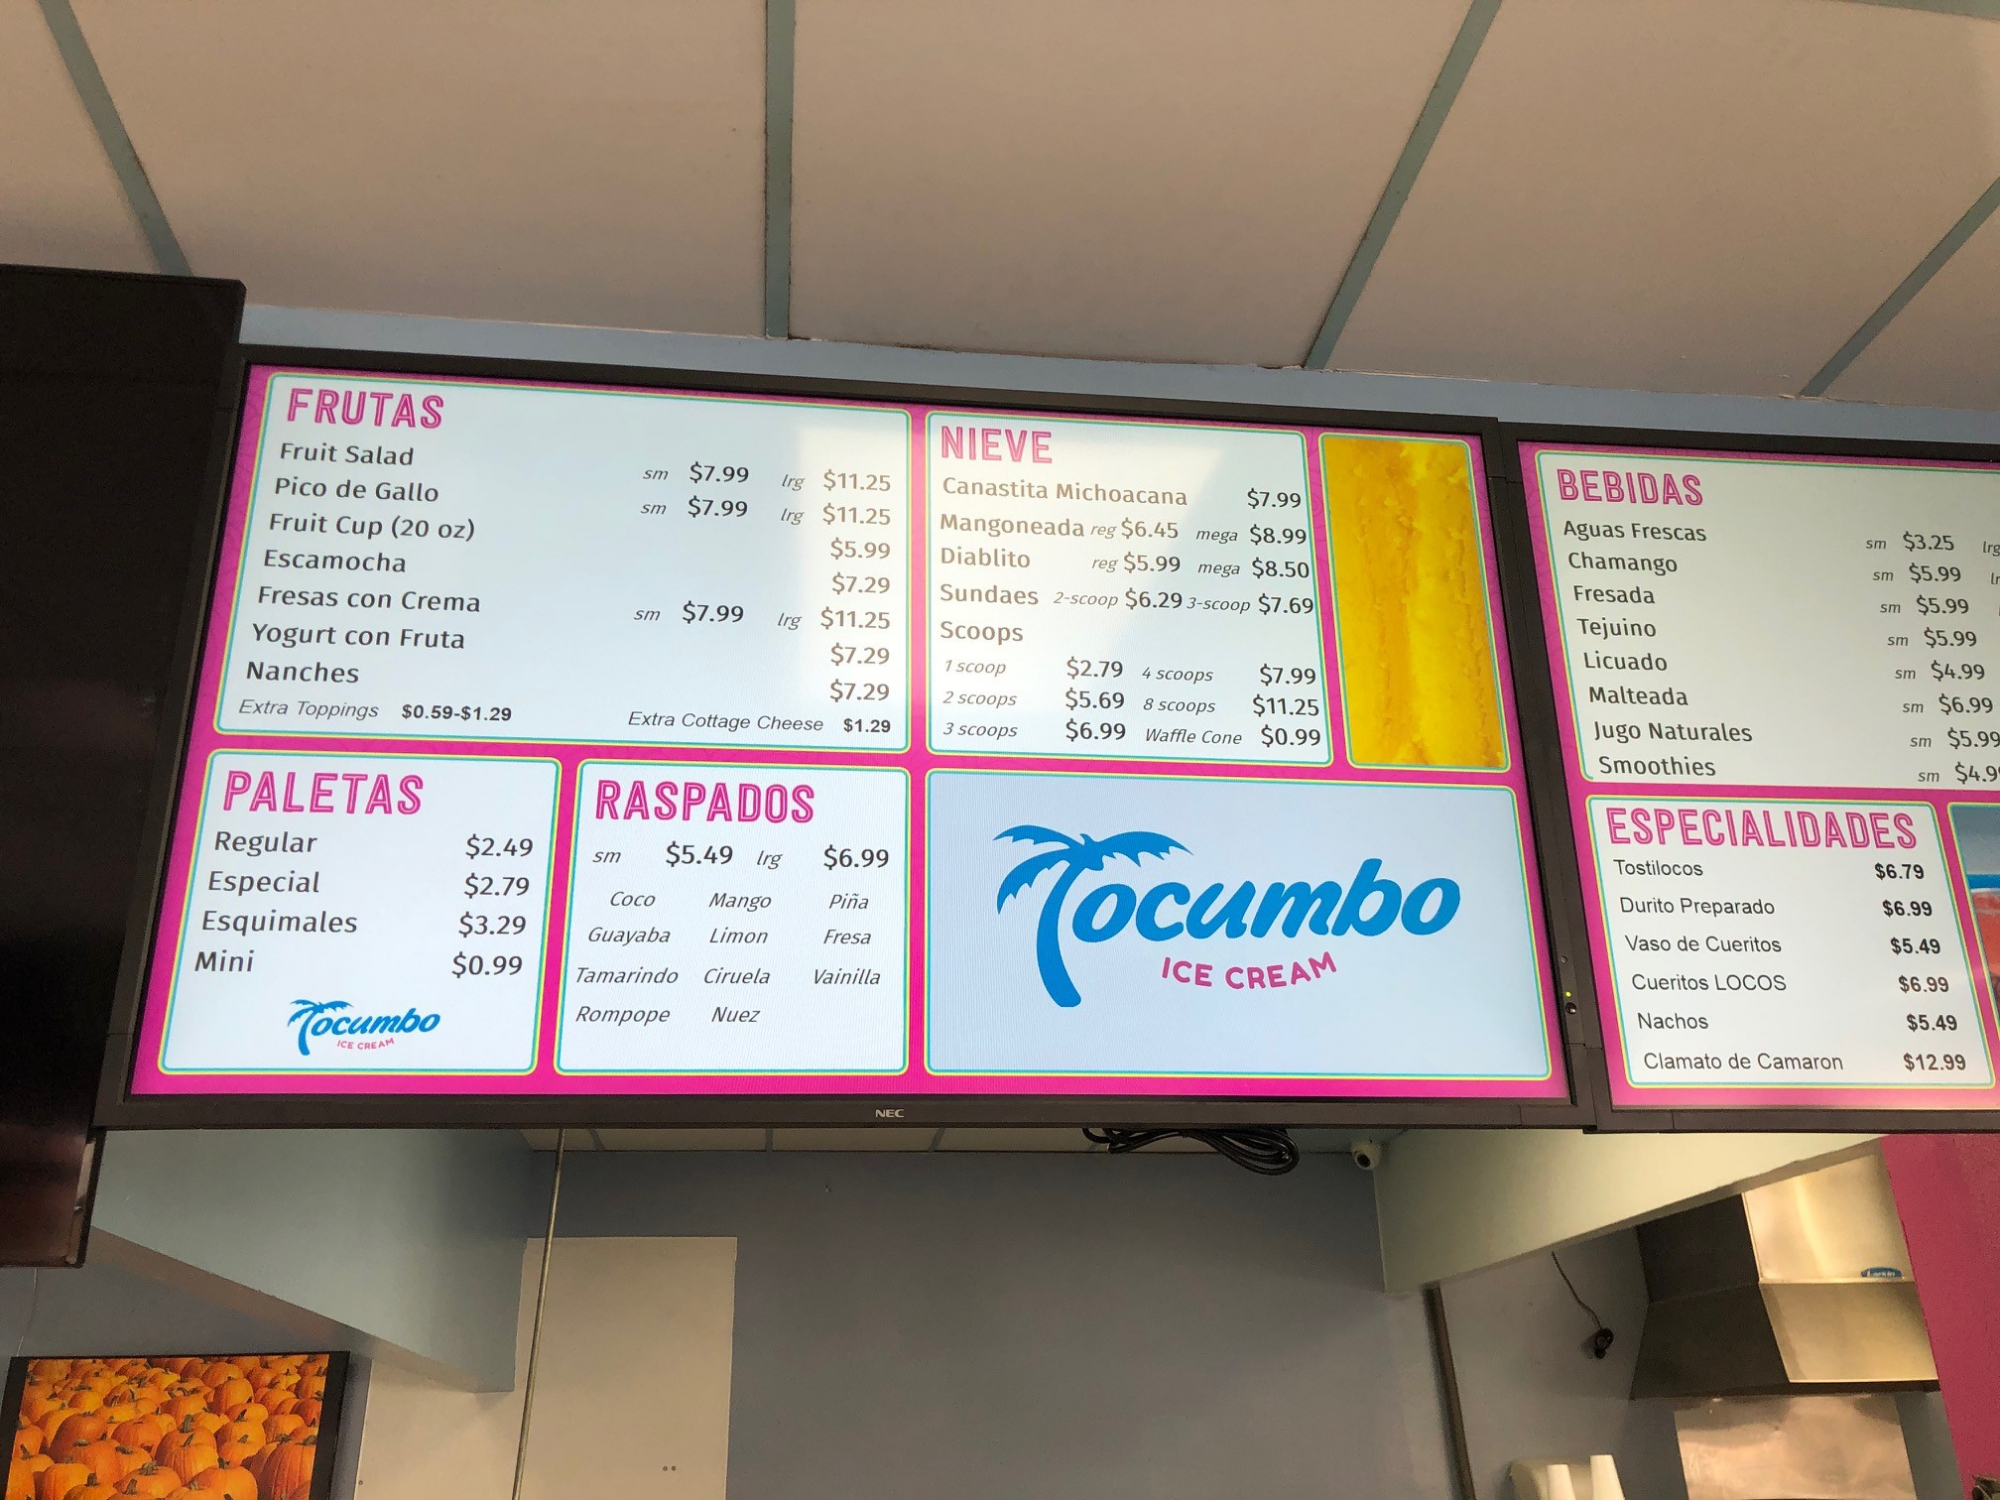 Tocumbo Ice Cream Digital Menu Boards